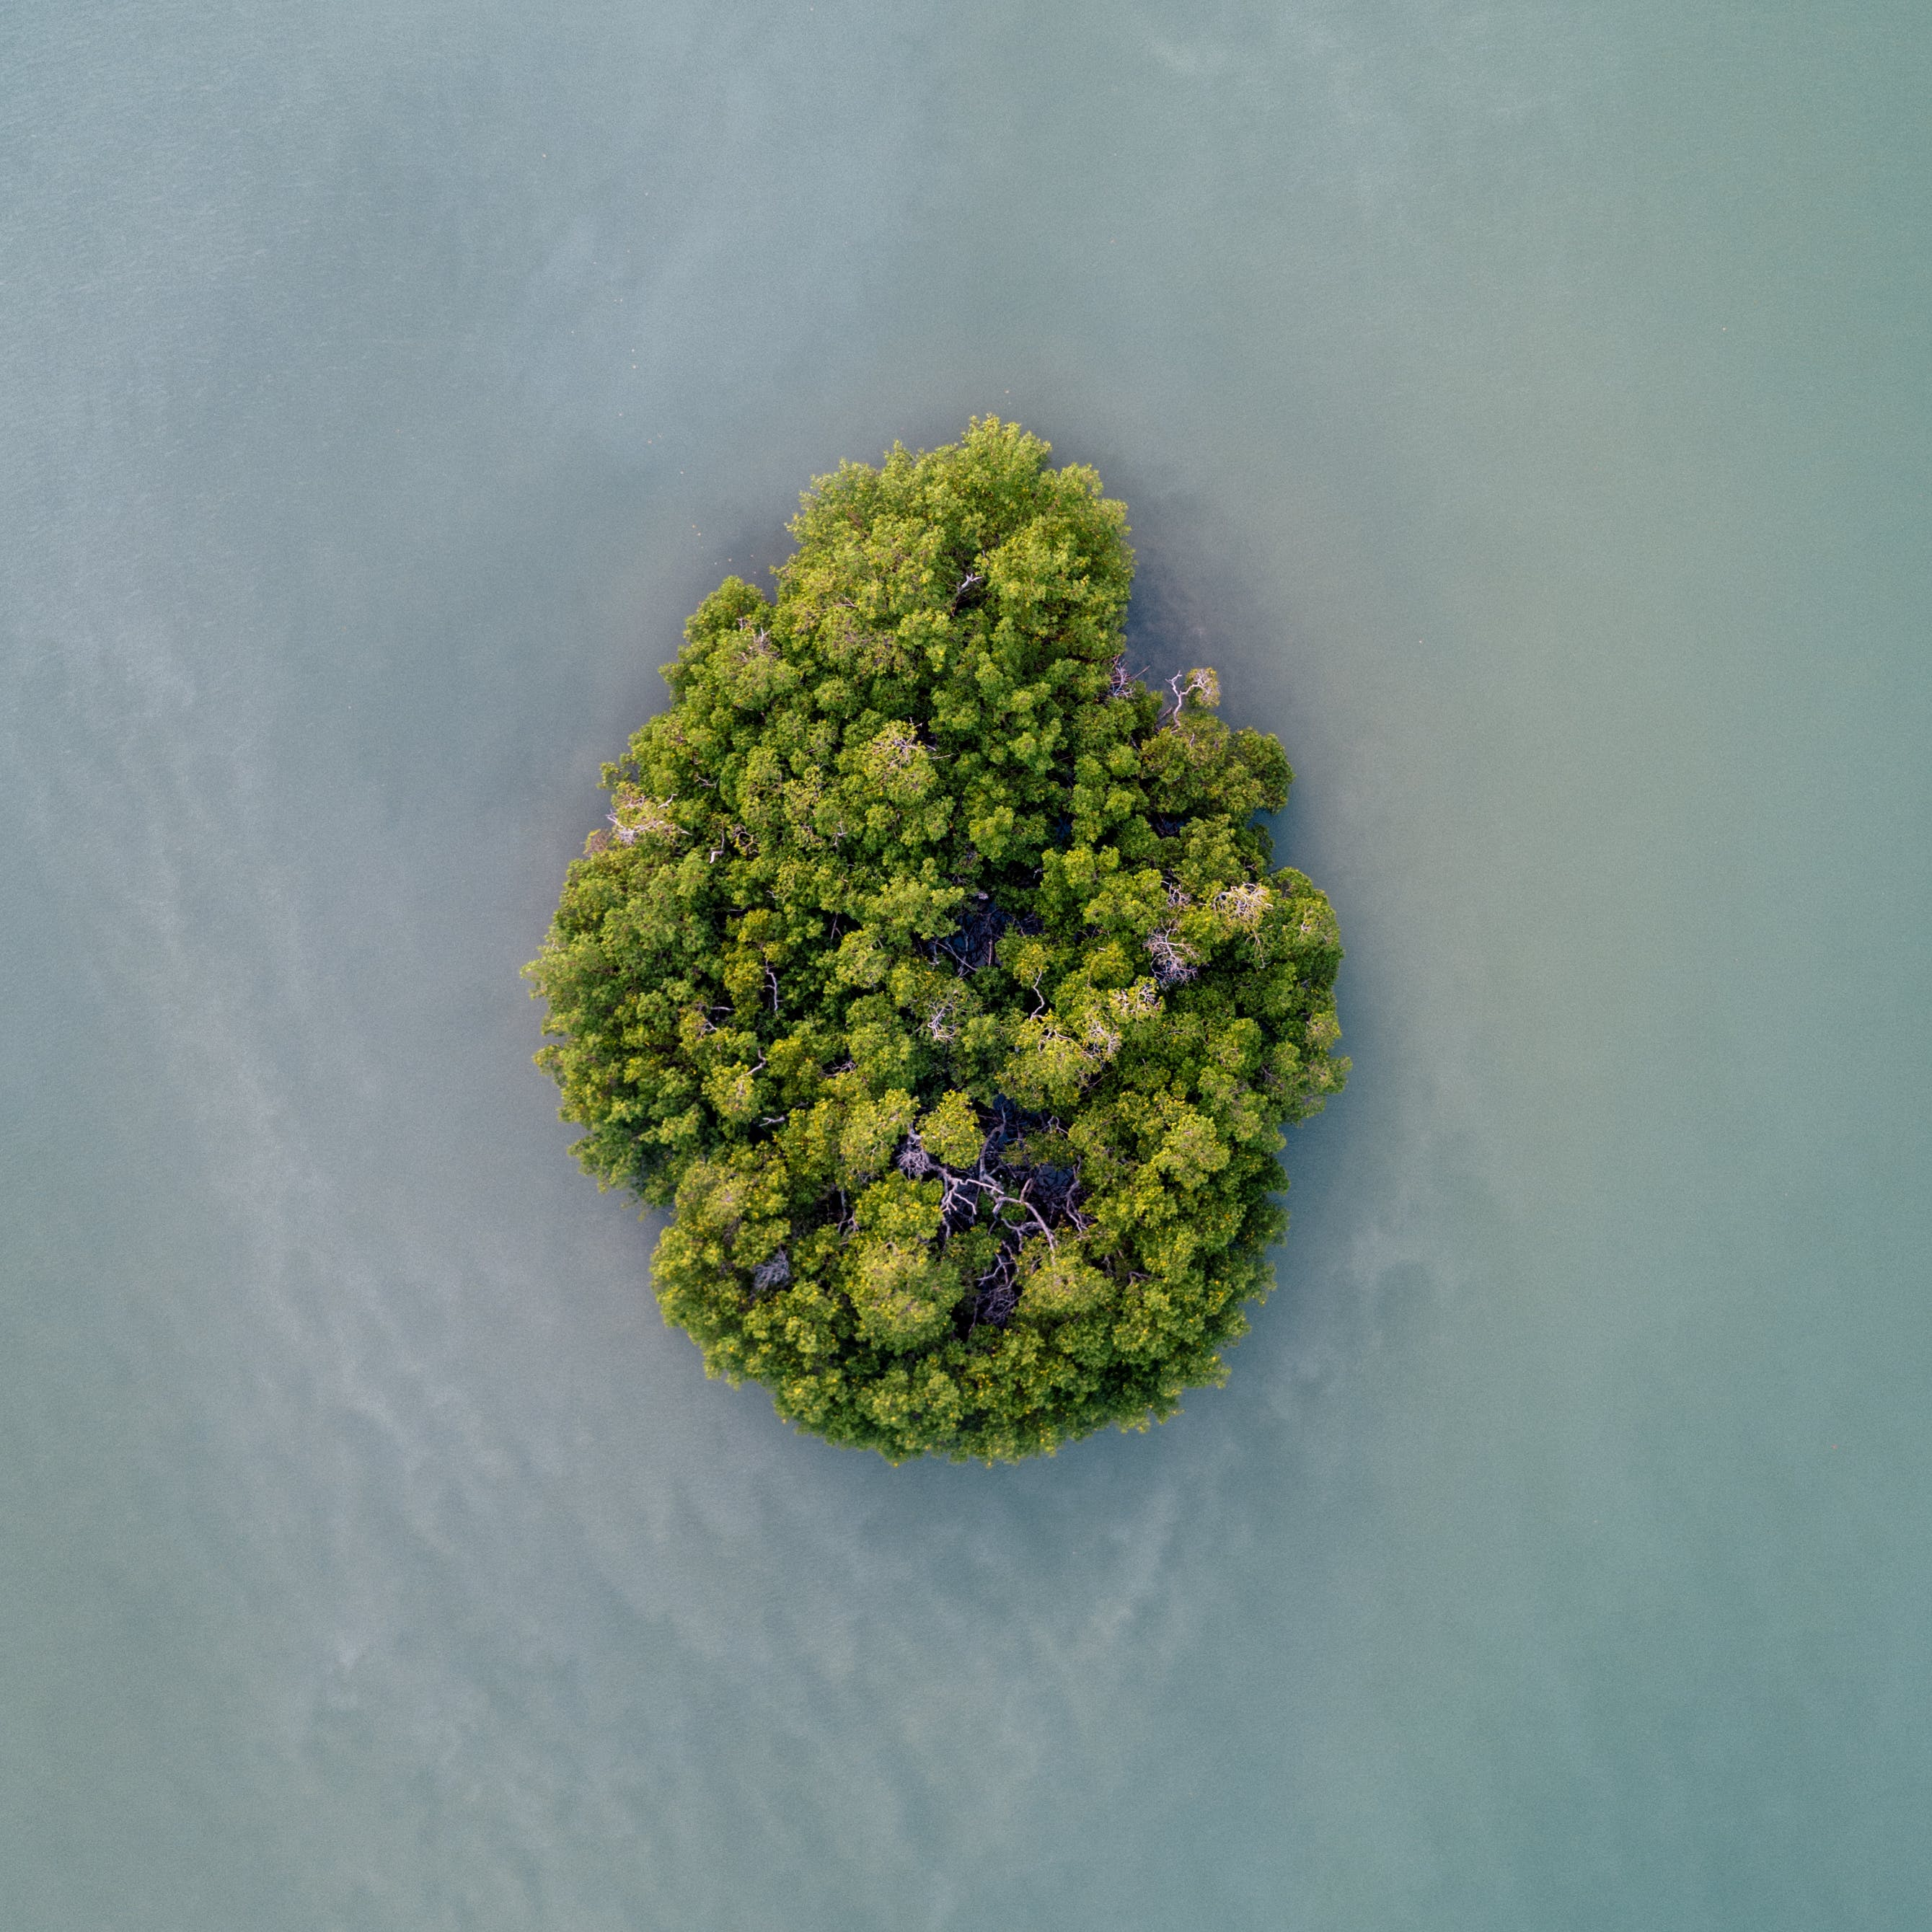 Aerial Photography of an Island Surrounded by Water